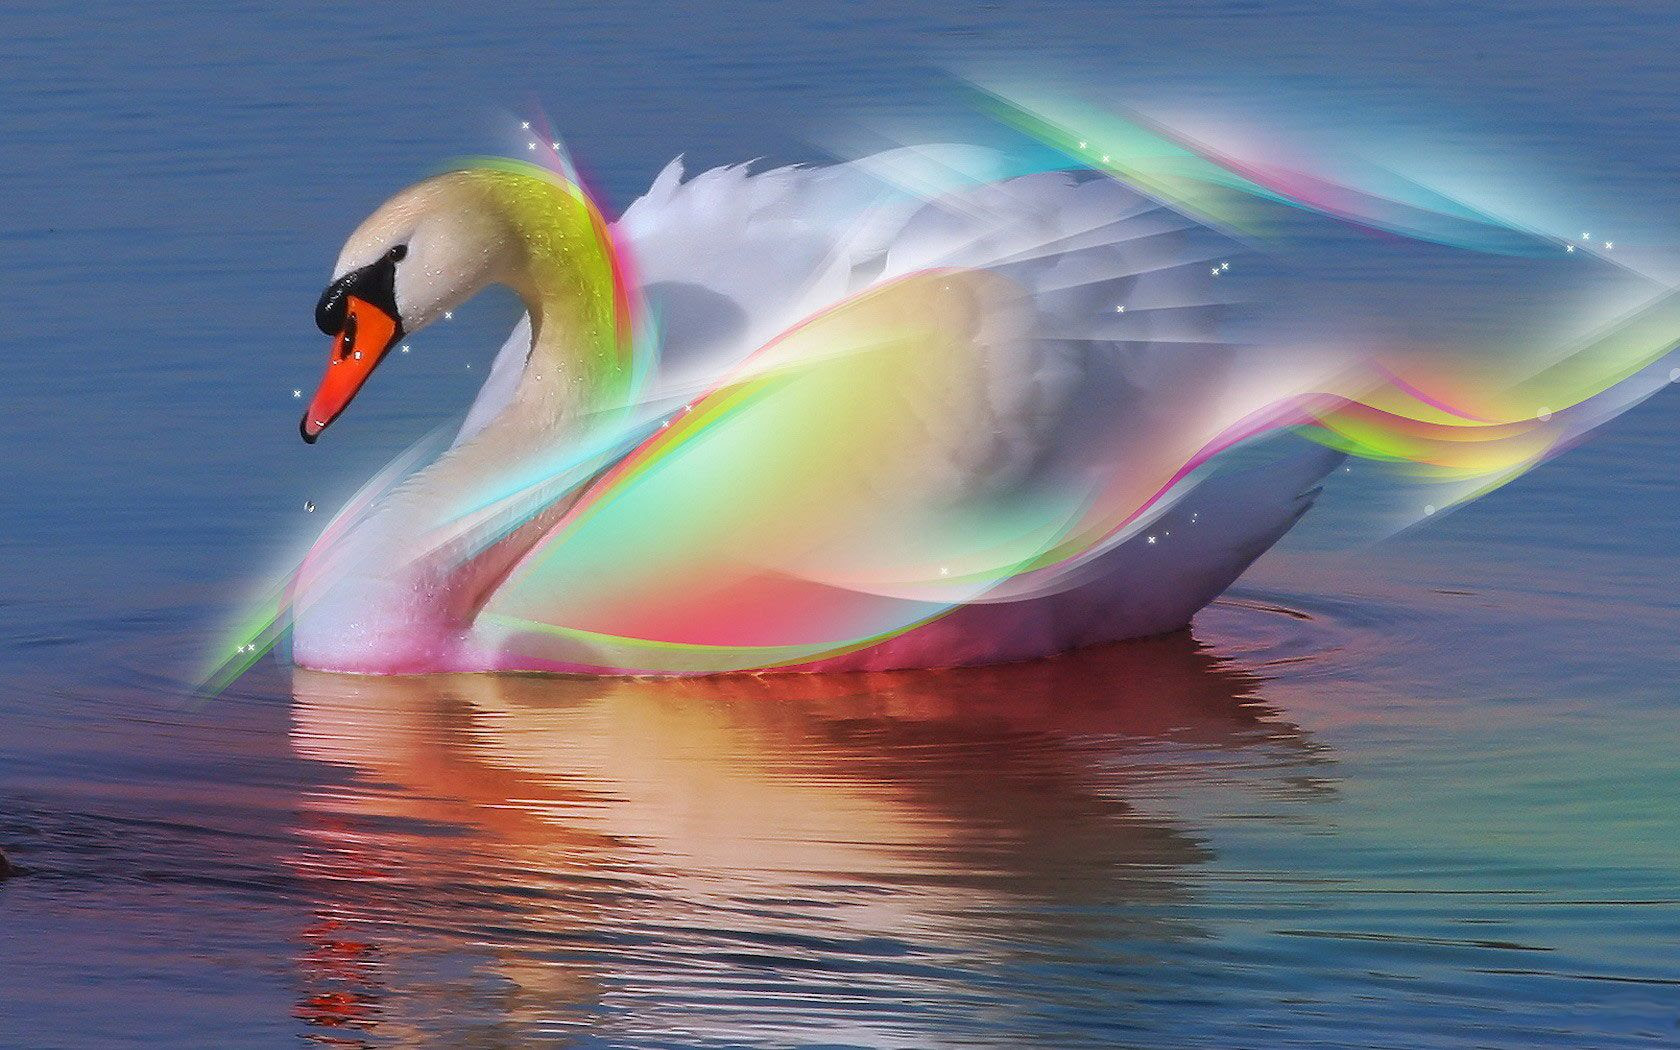 50 Beautiful Pictures And Wallpapers To Download - The WoW ...